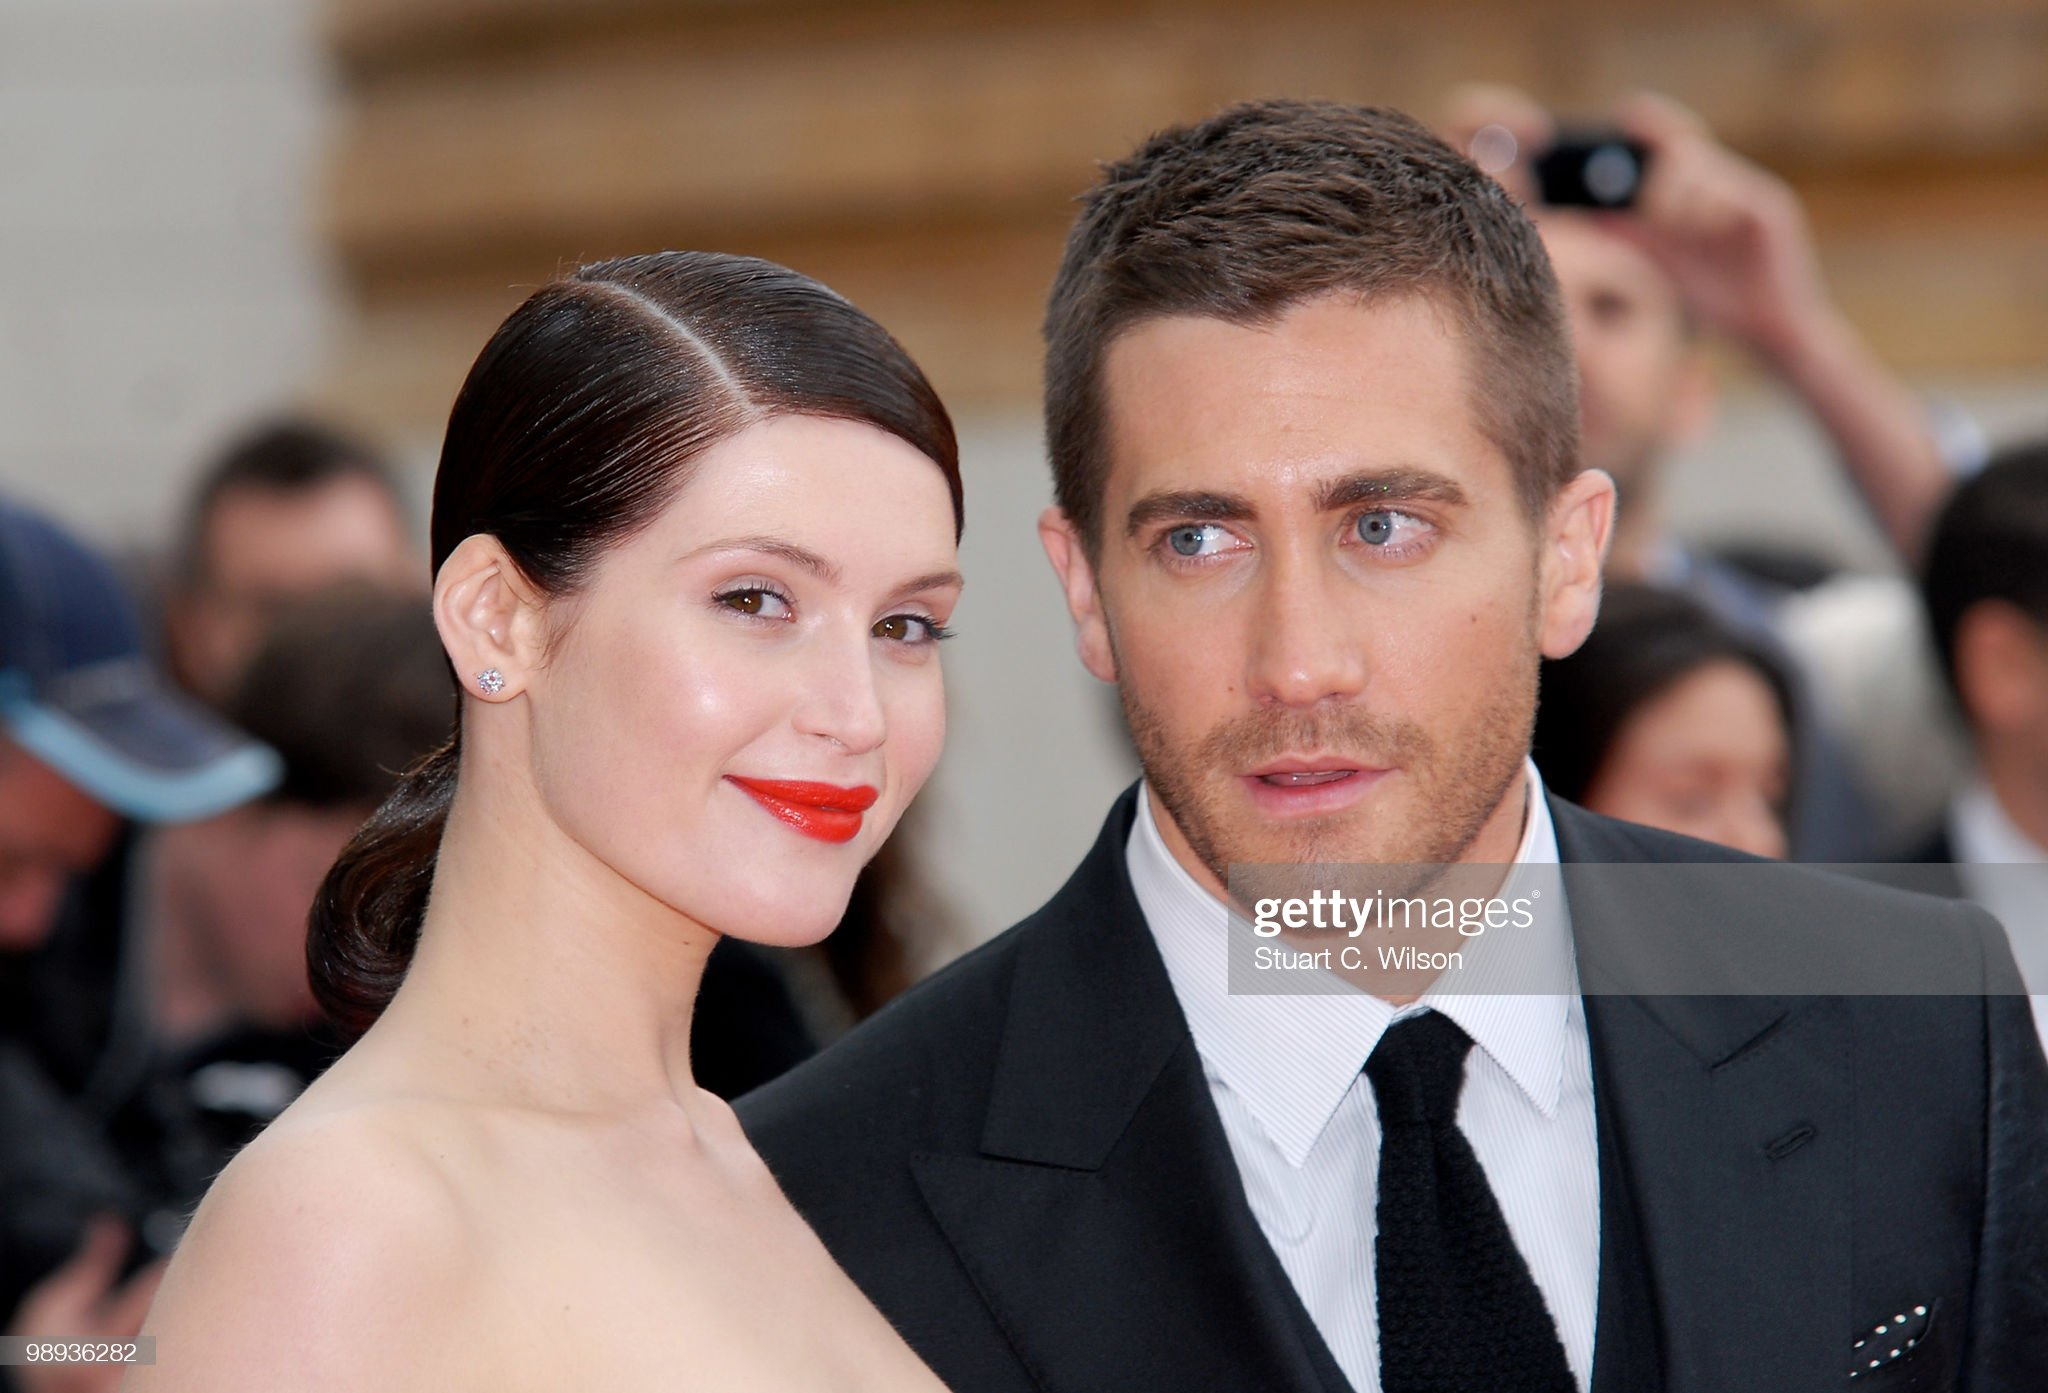 gemma-arterton-and-jake-gyllenhaal-attend-the-world-premiere-of-of-picture-id98936282